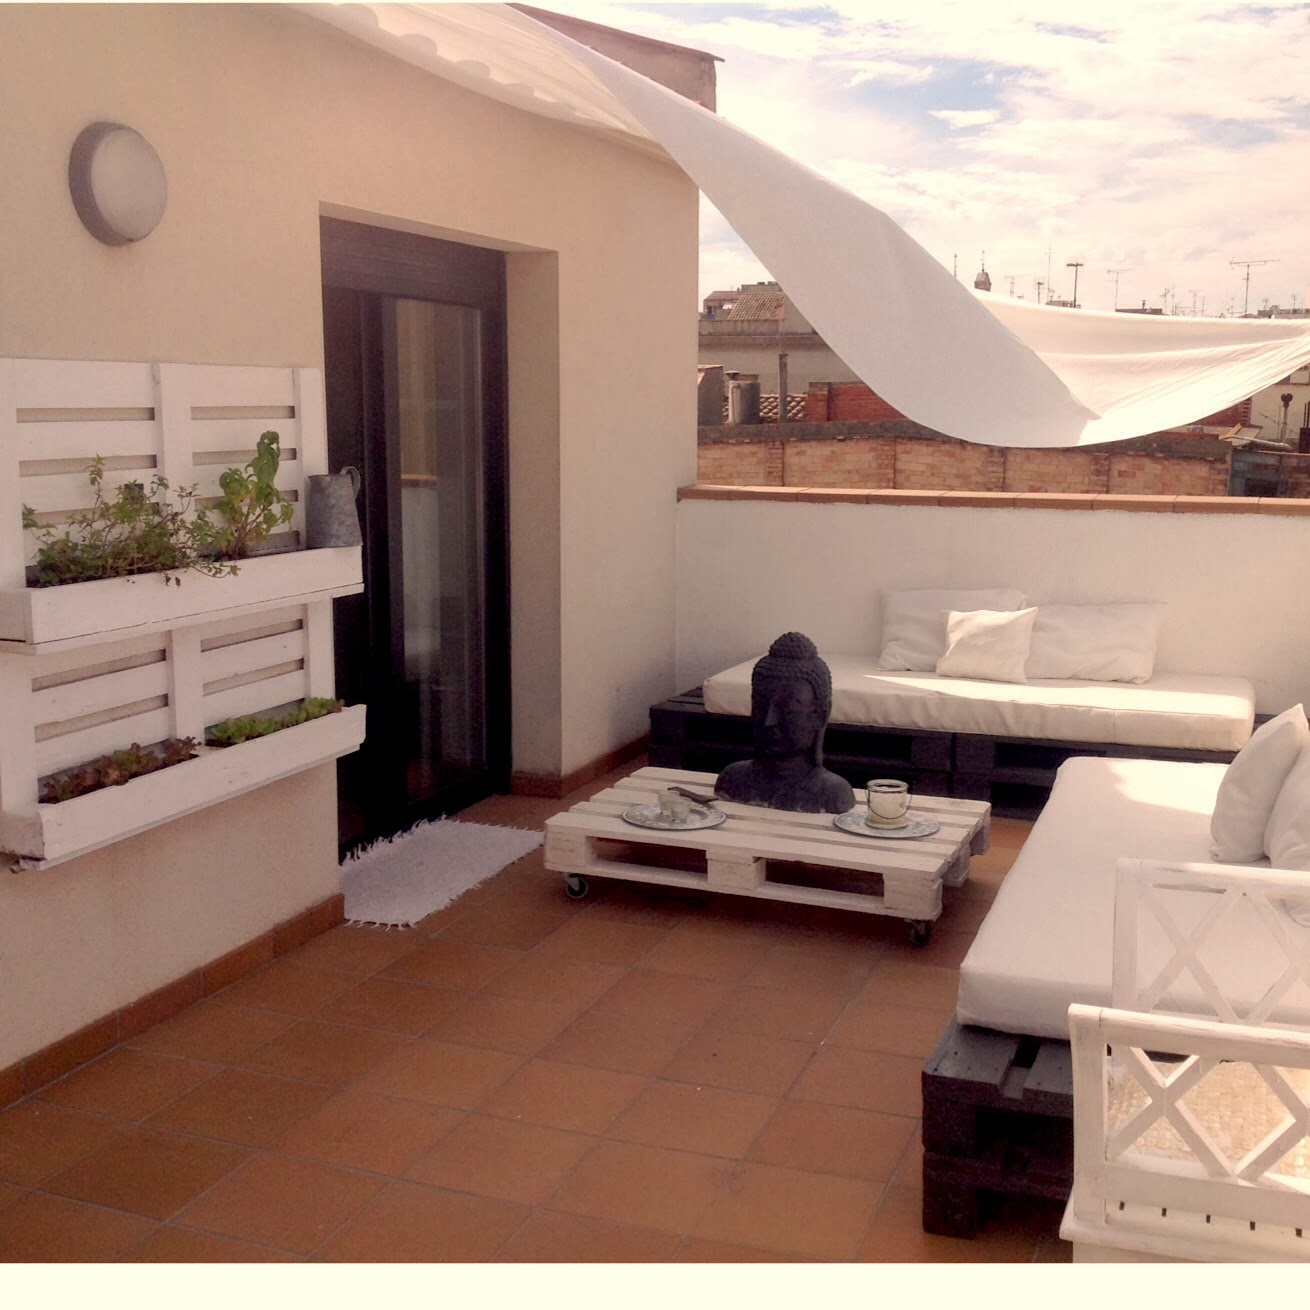 Muebles Con Palets Para Exterior Sobesonhome Mi Terraza Chill Out De Palets